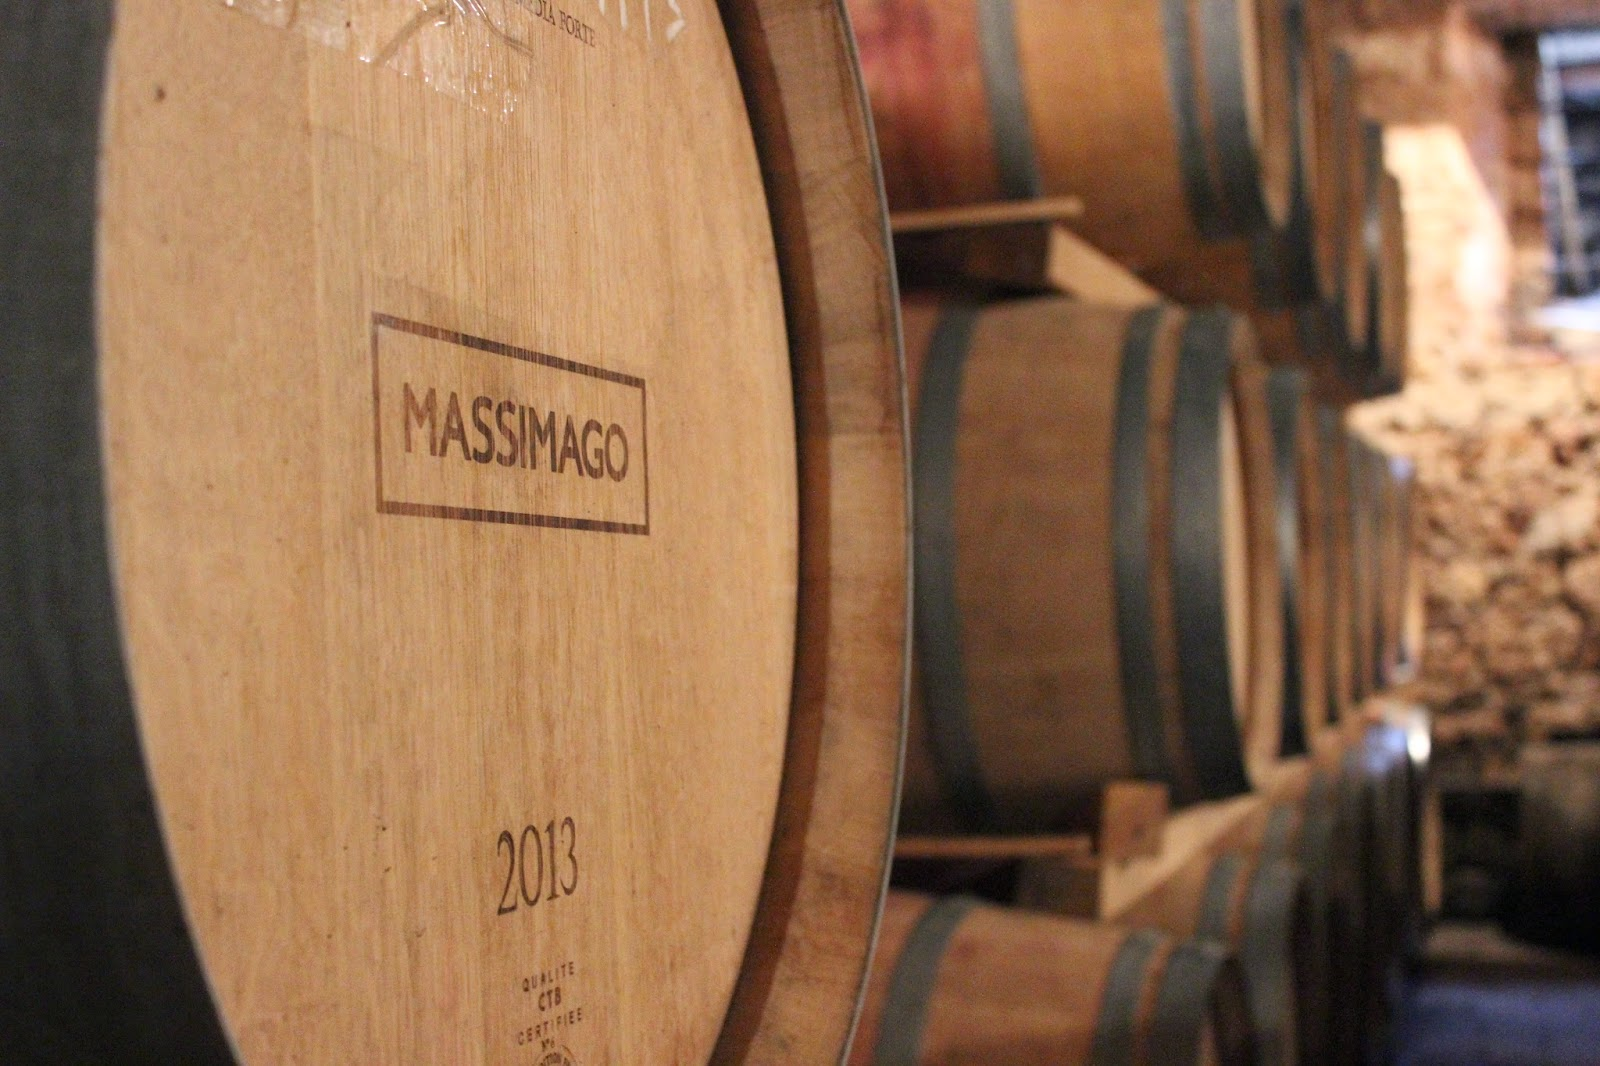 Massimago winery in Mezzane Valley